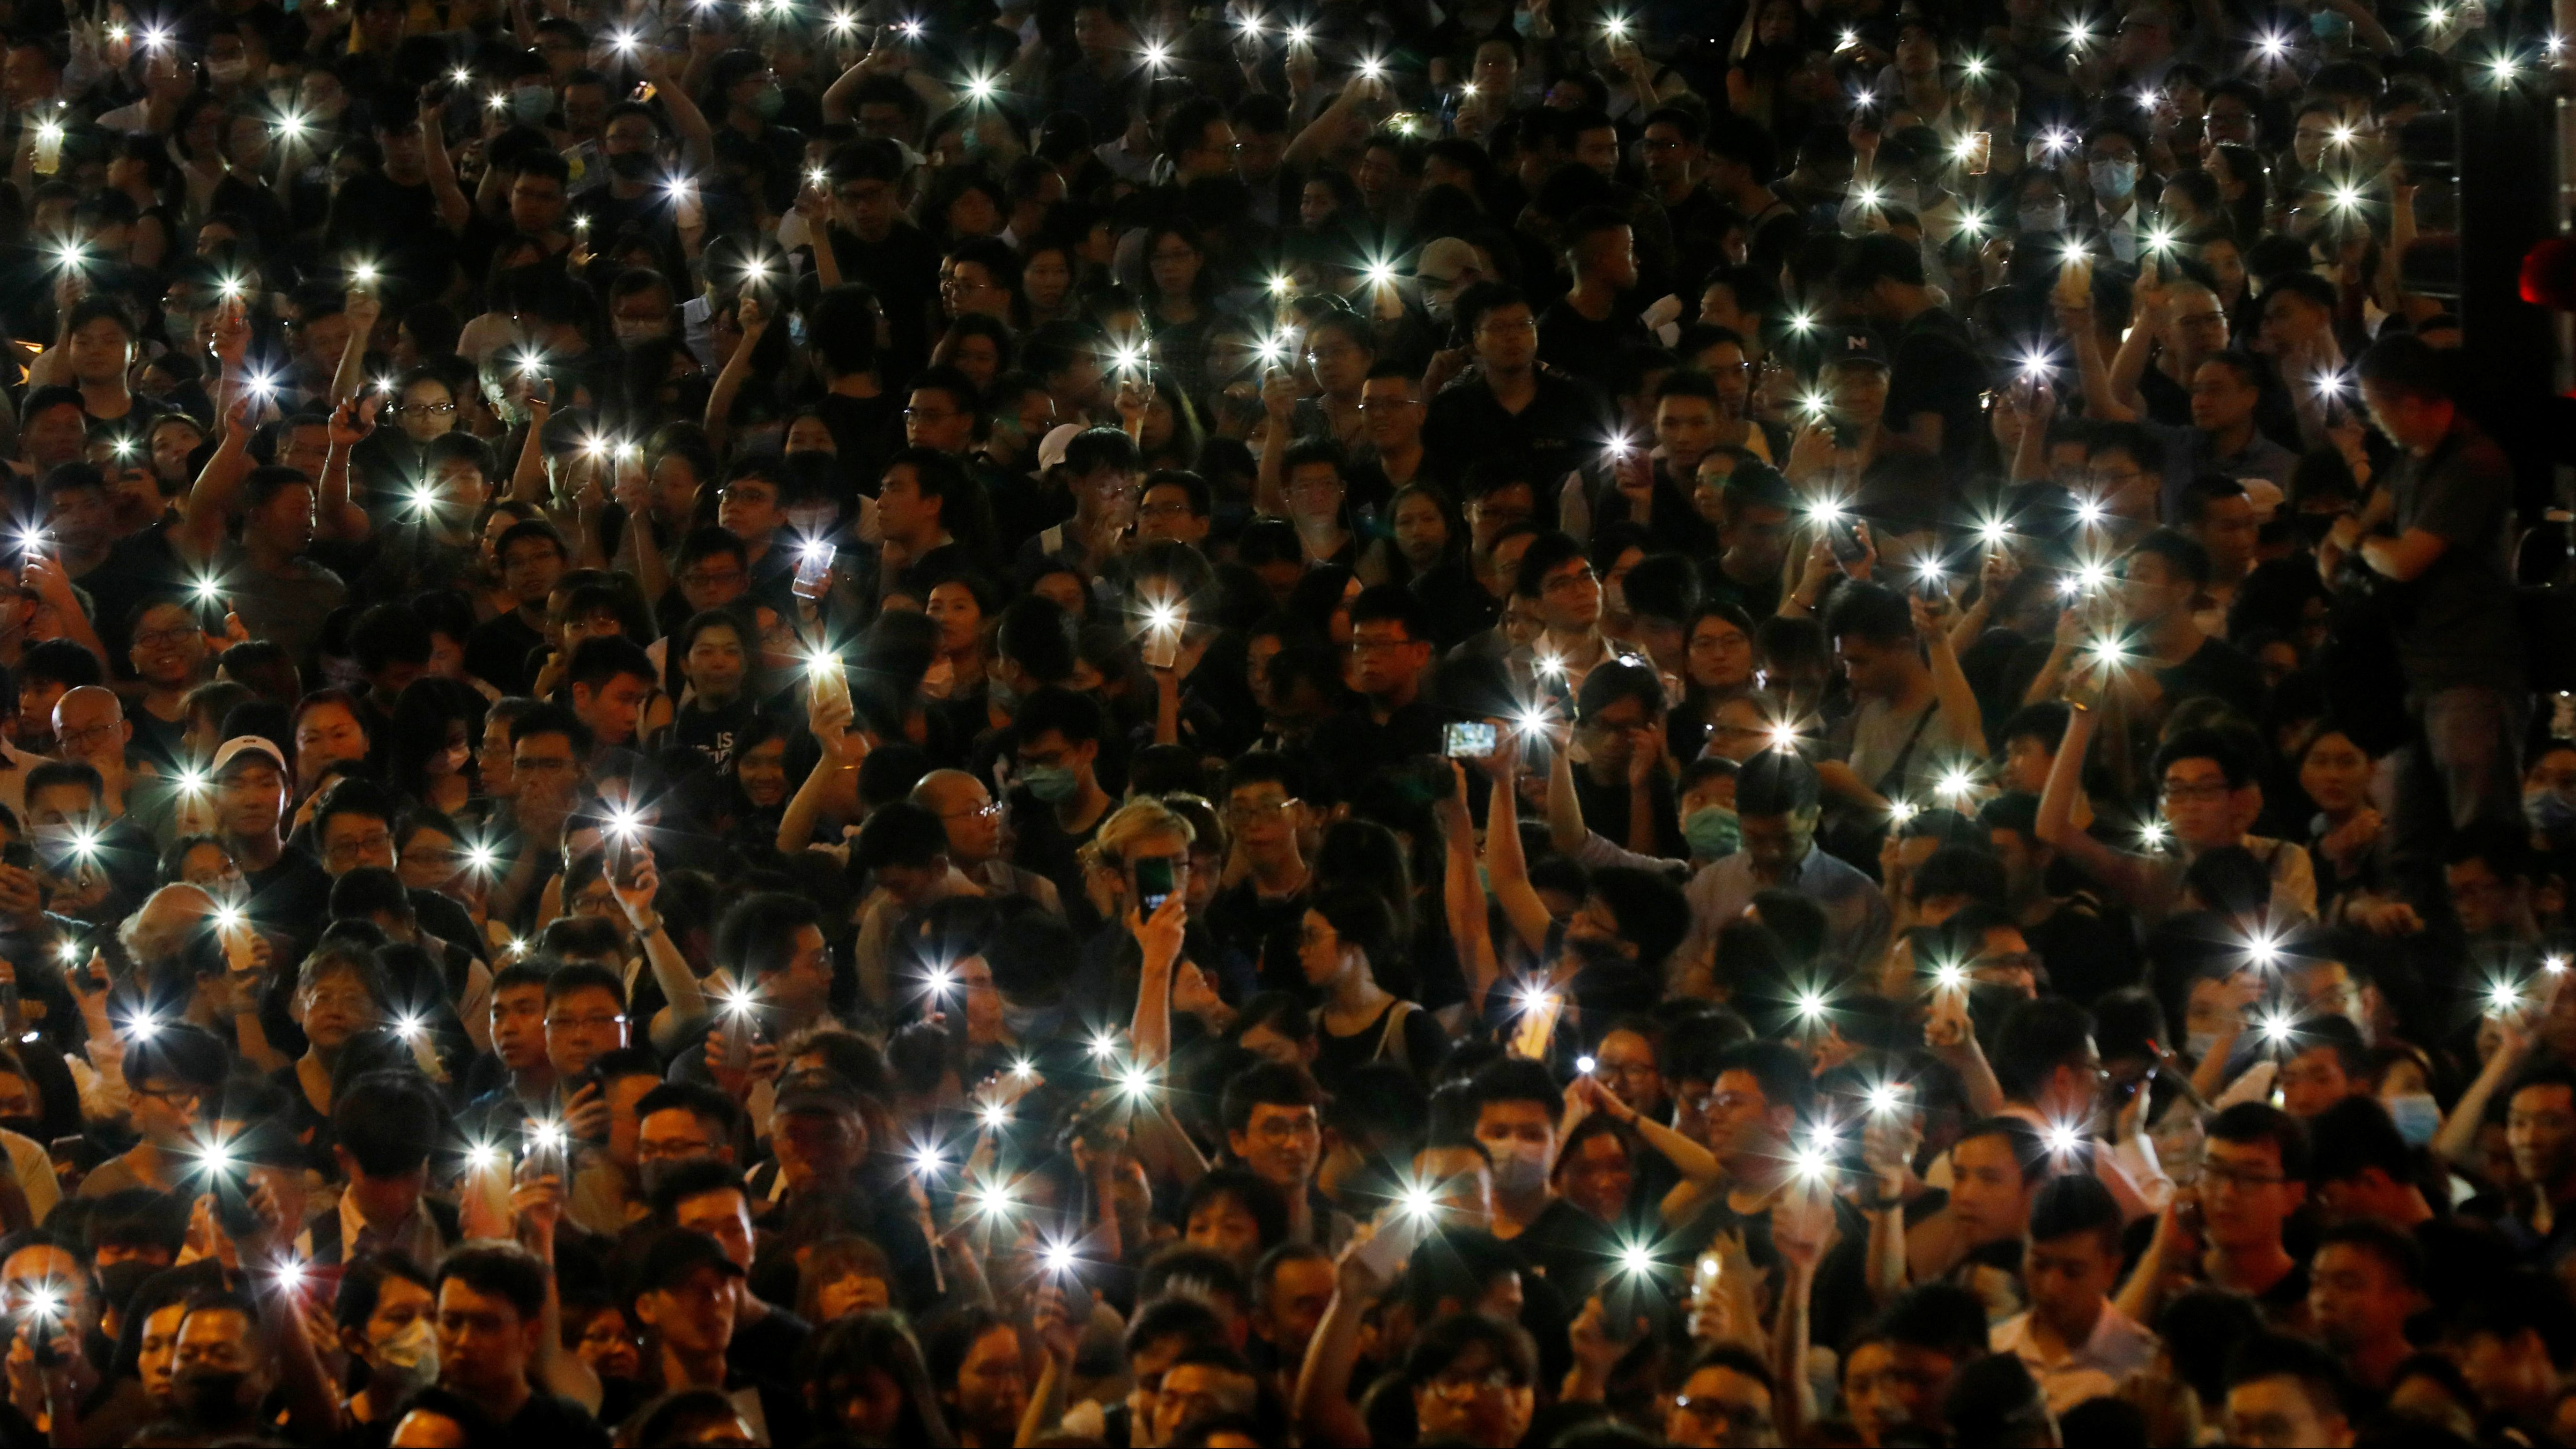 Attendees hold up their lit mobile phones during a rally by civil servants to support the anti-extradition bill protest in Hong Kong, China.